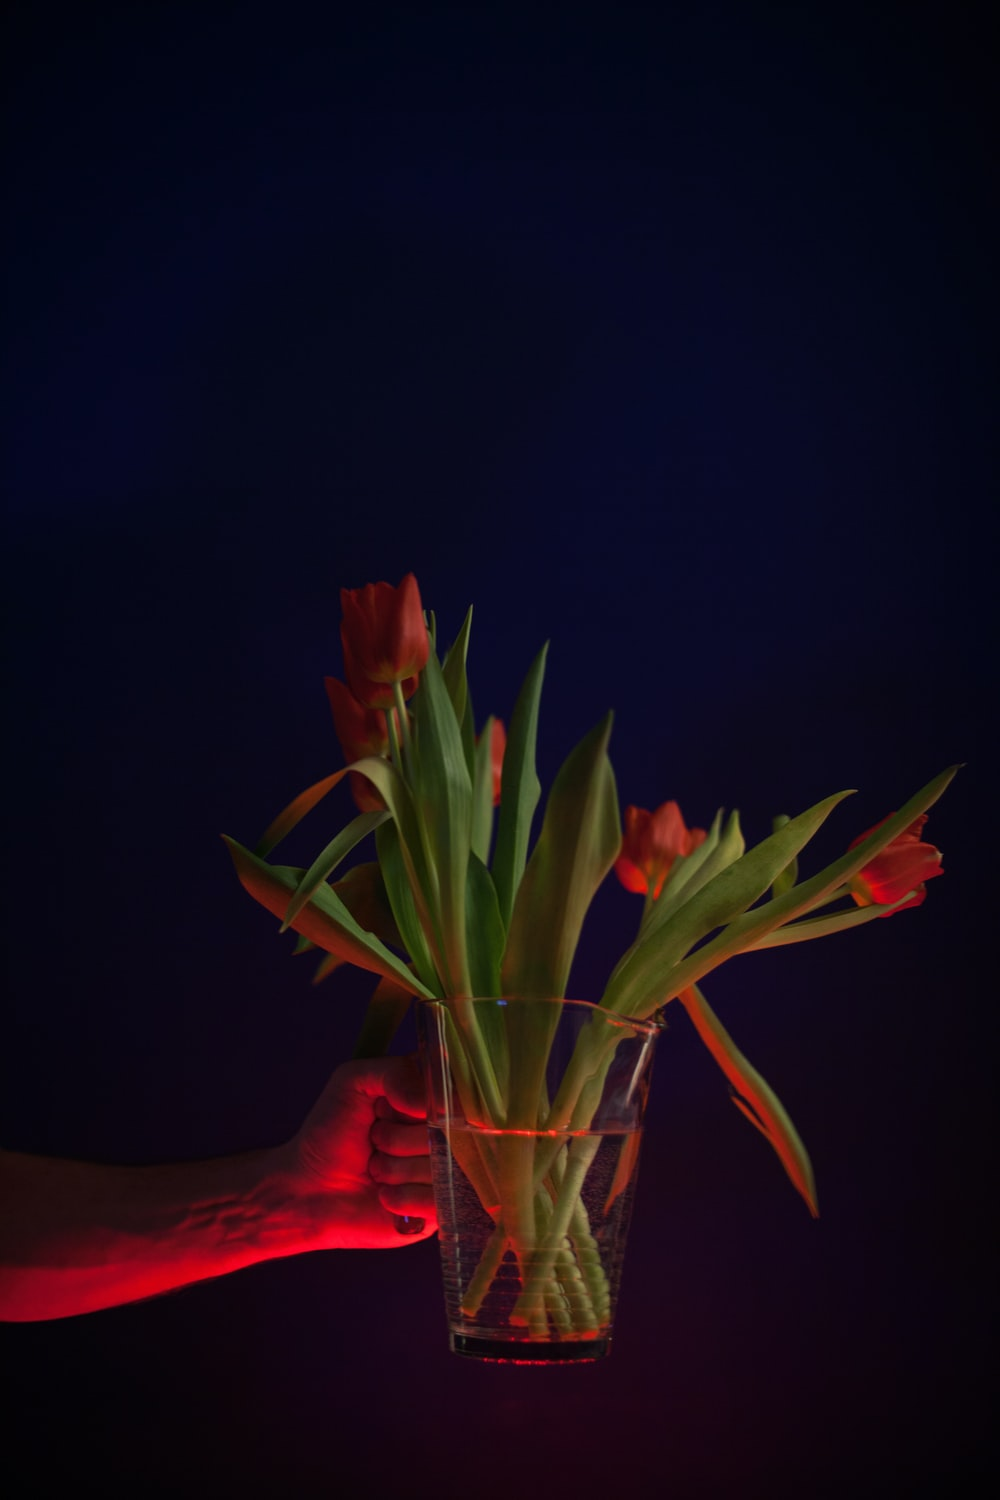 red tulip flowers in clear glass pitcher vase